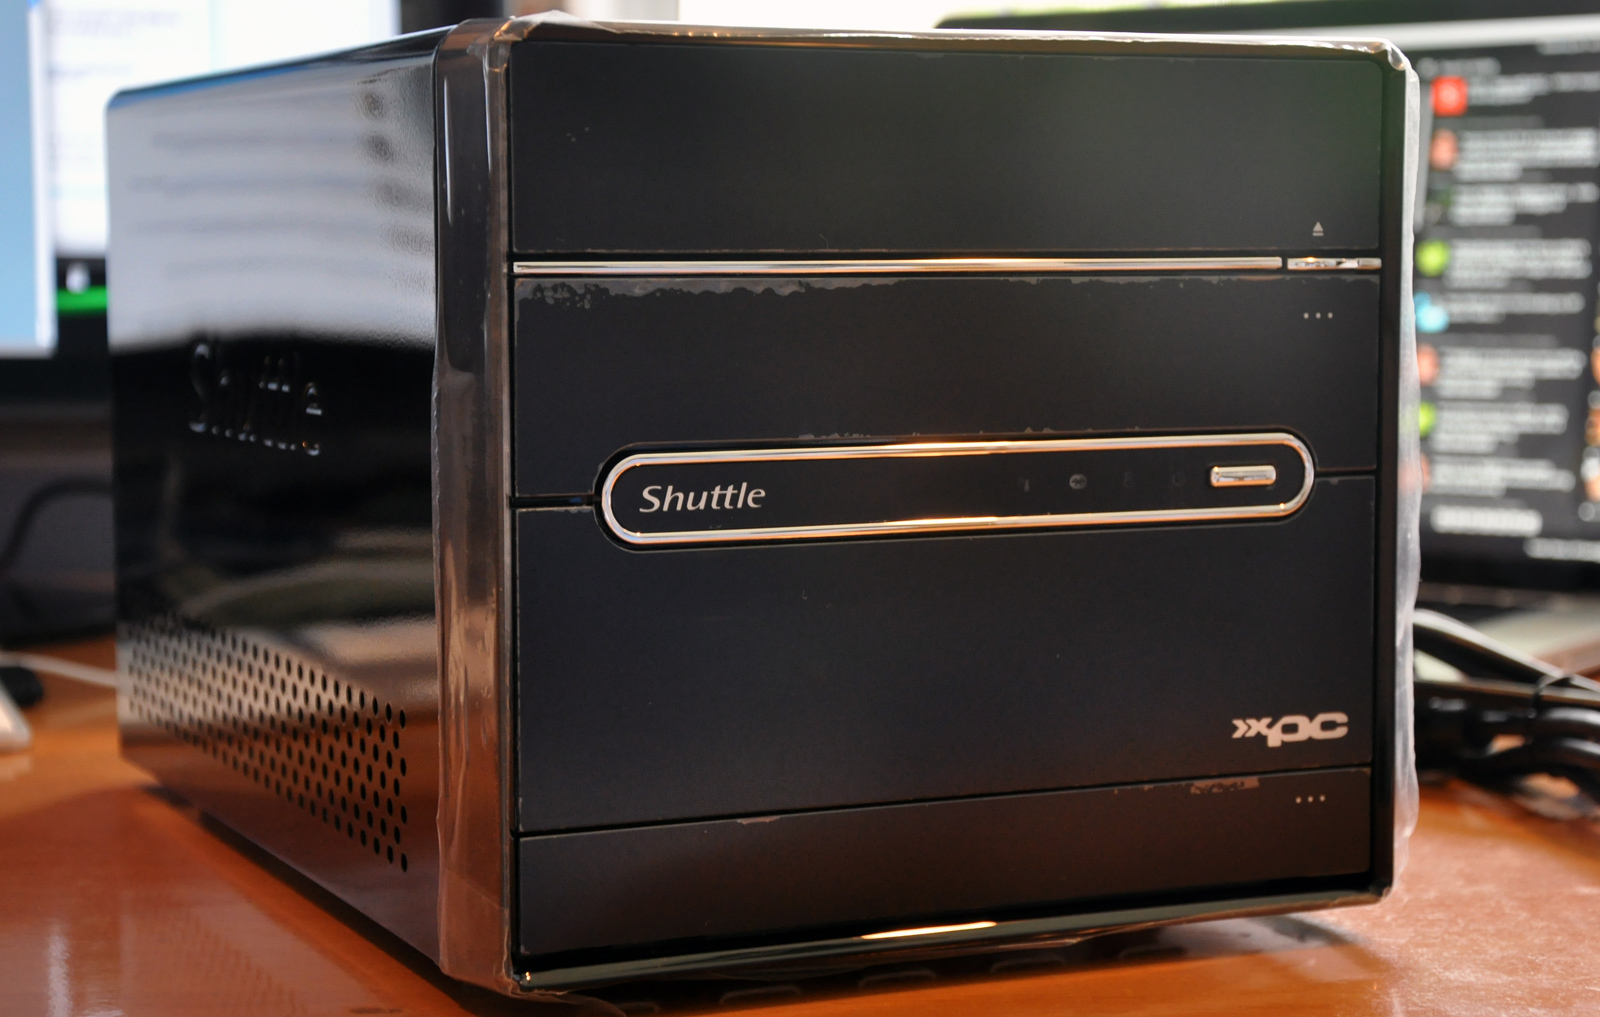 Shuttle SX58H7 PRO Drivers for PC